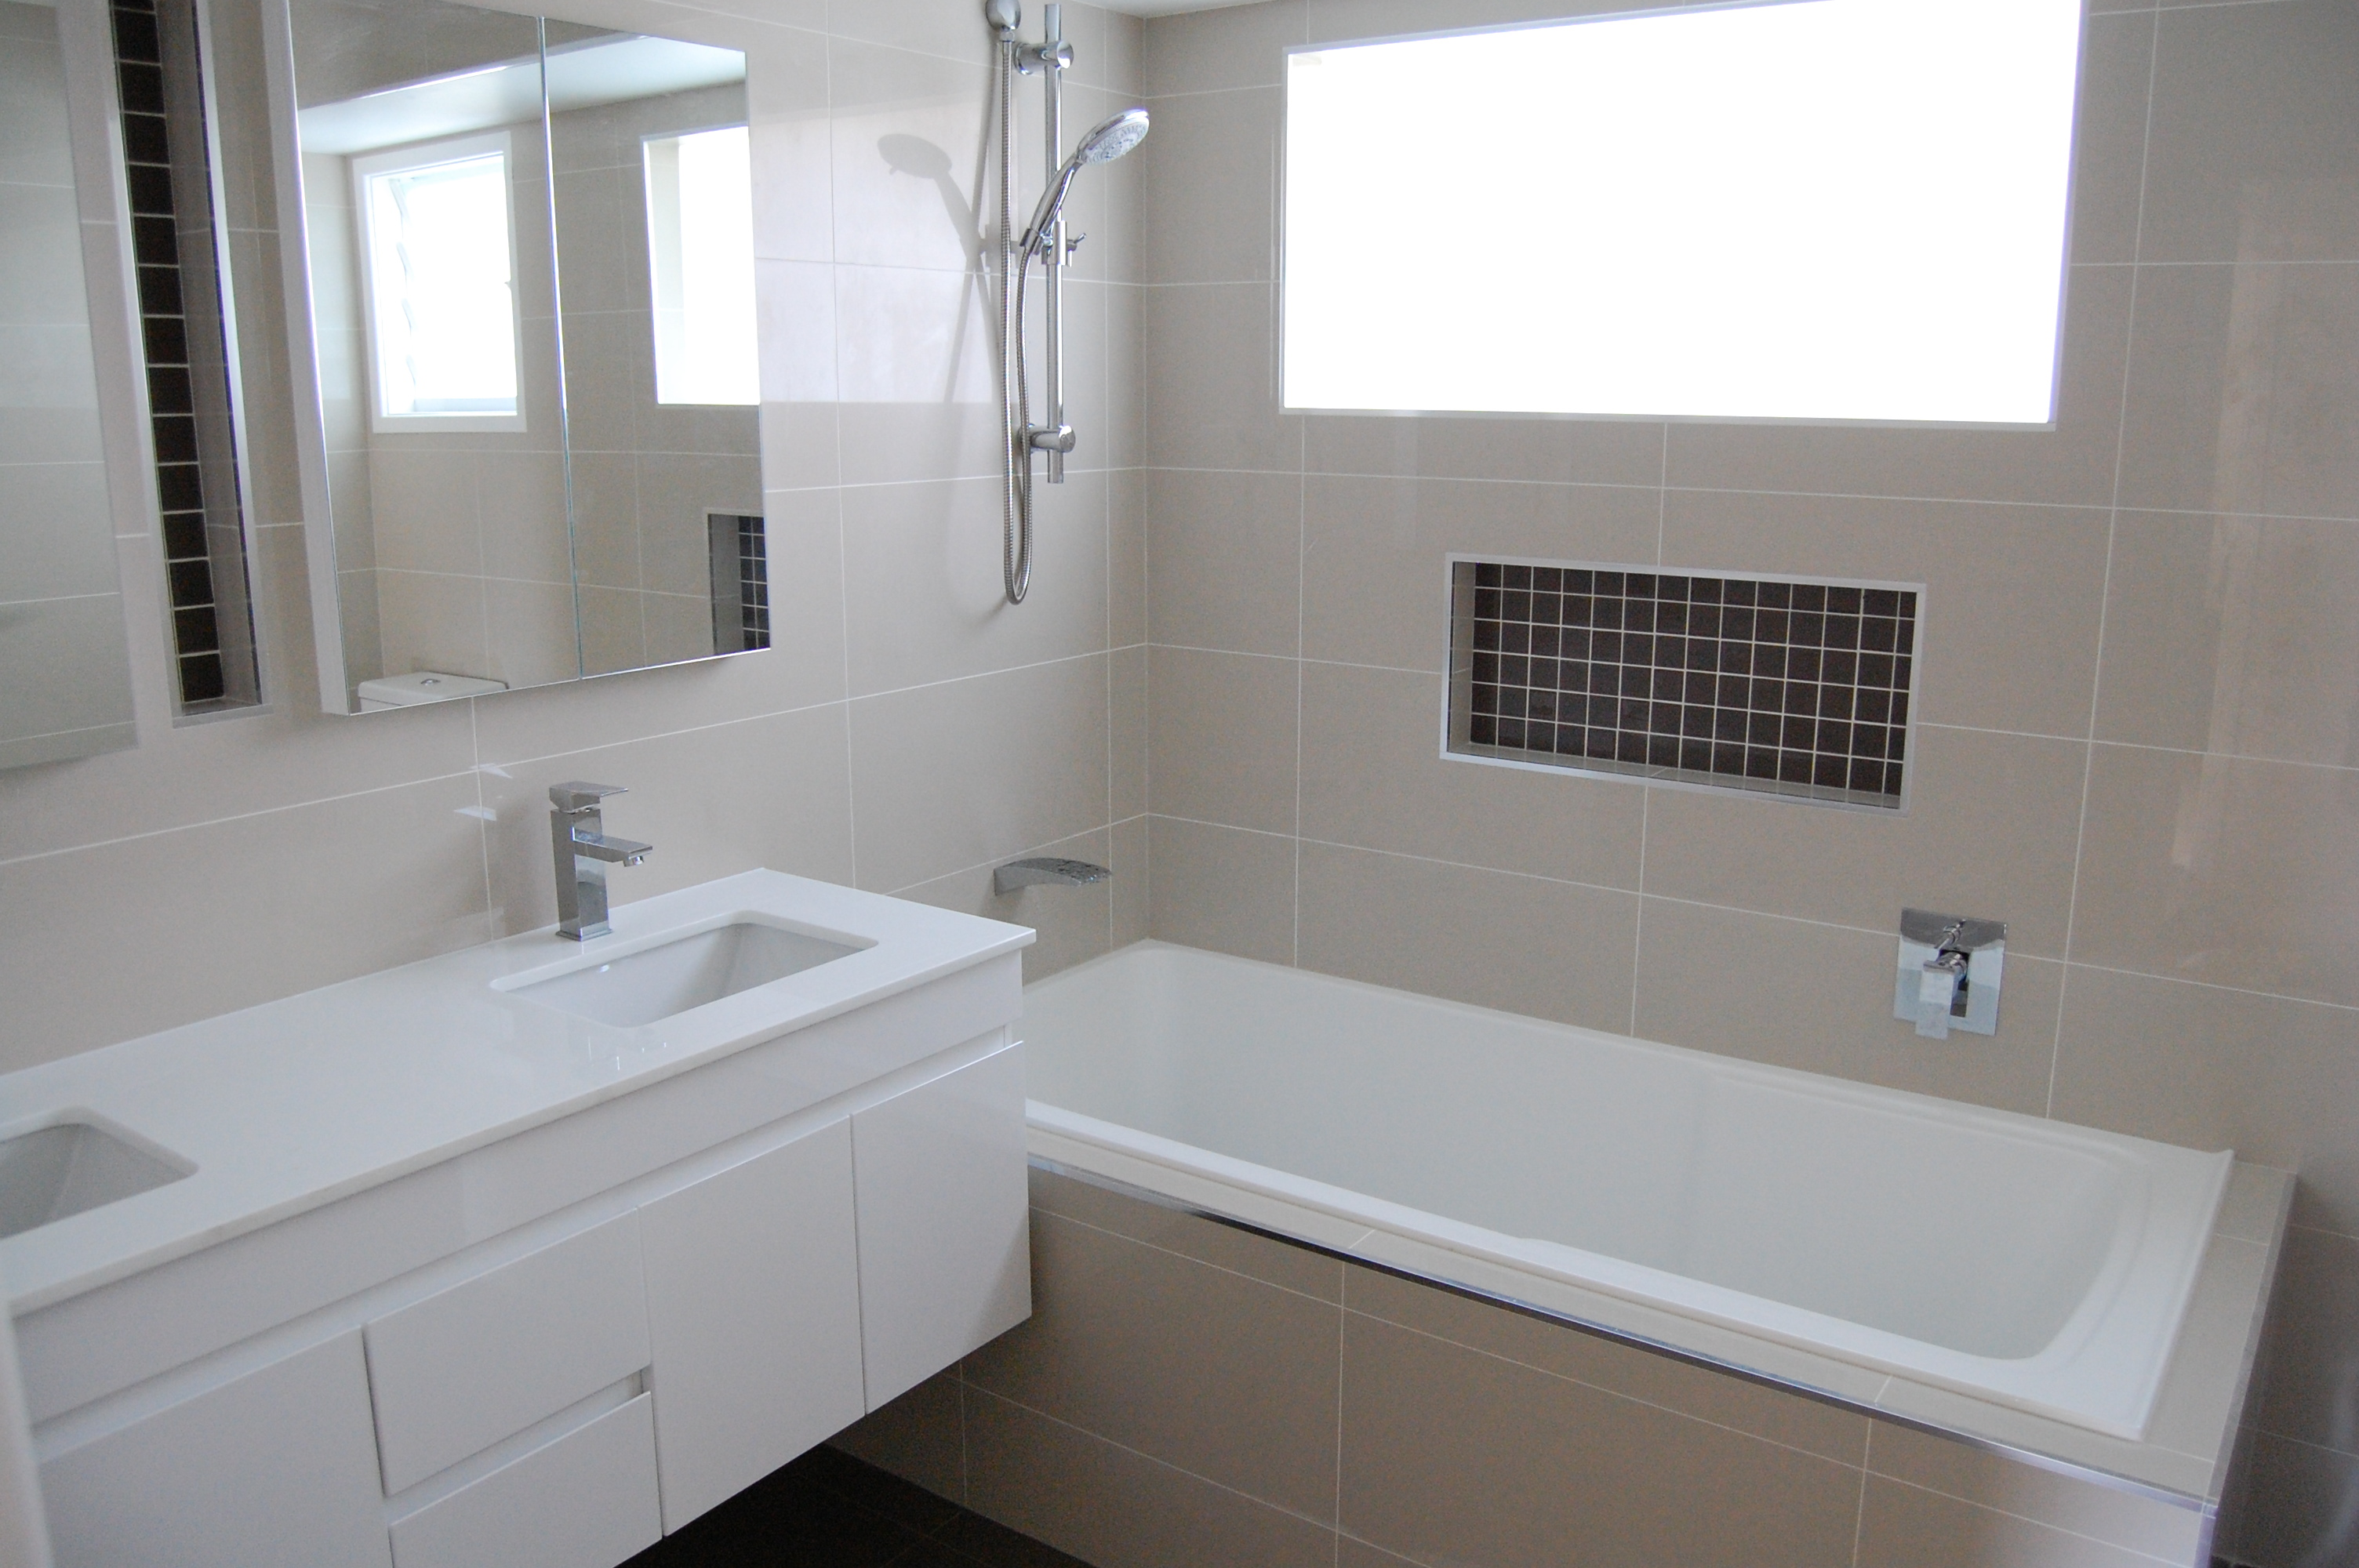 Neutral-Bathroom-With-Ceramic-Tile-Floor-With-Wash-Hasn-Double-Small-Mirror-With-White-Bathtub